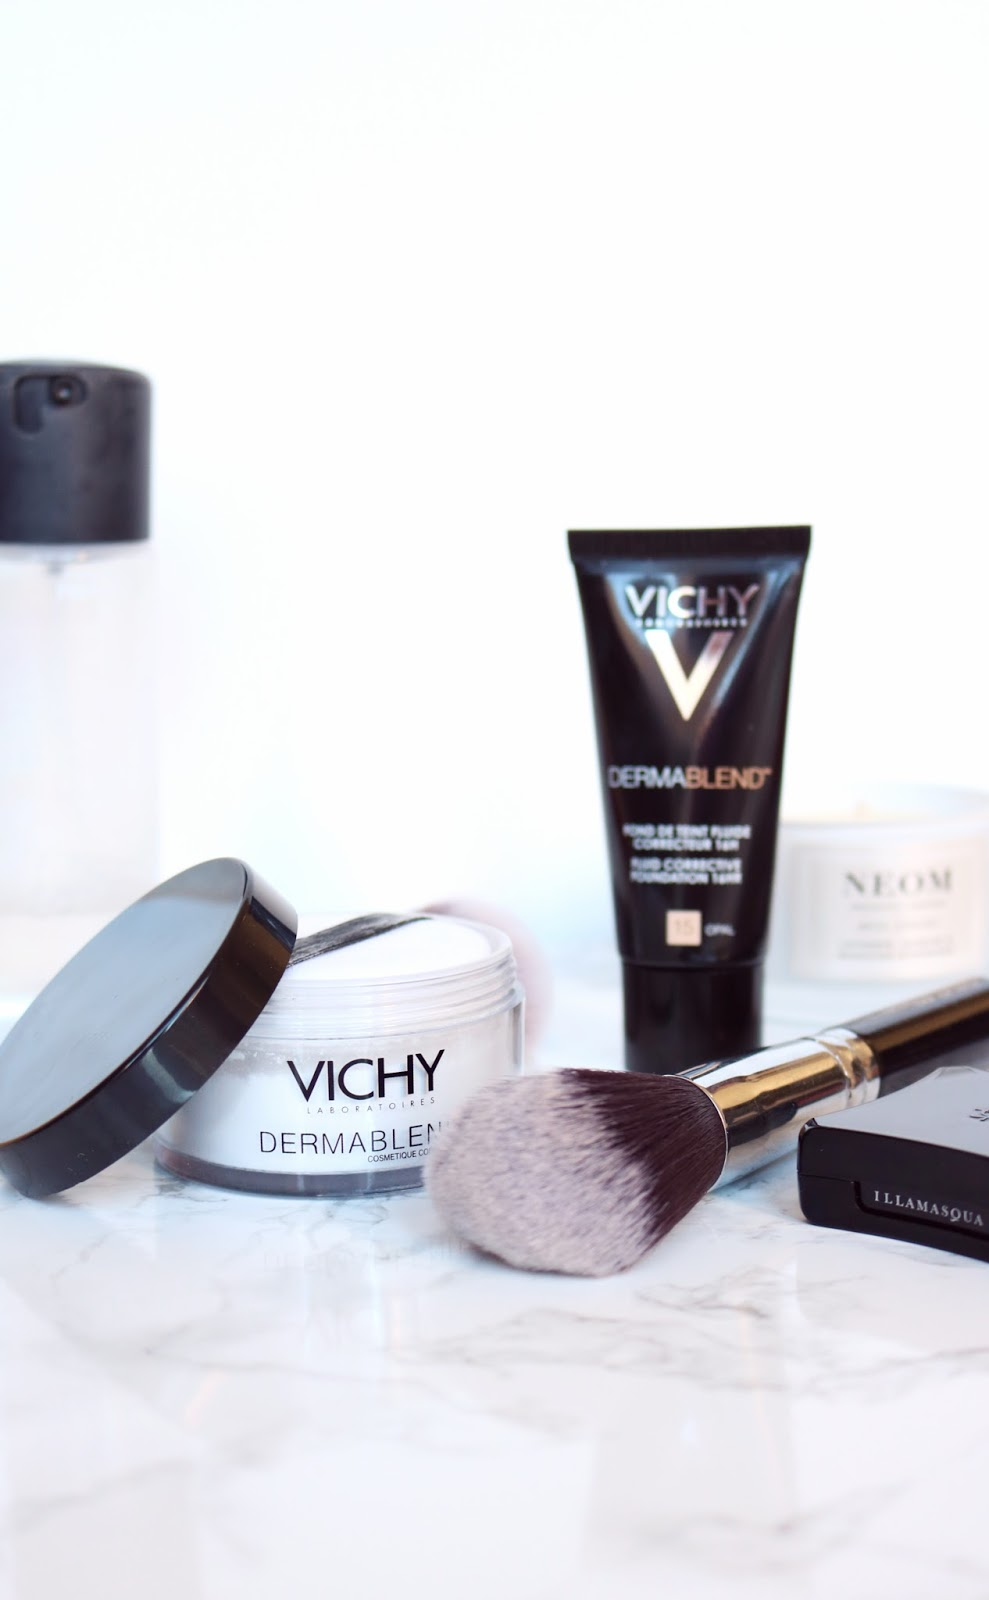 Vichy Dermablend Foundation and Loose Powder